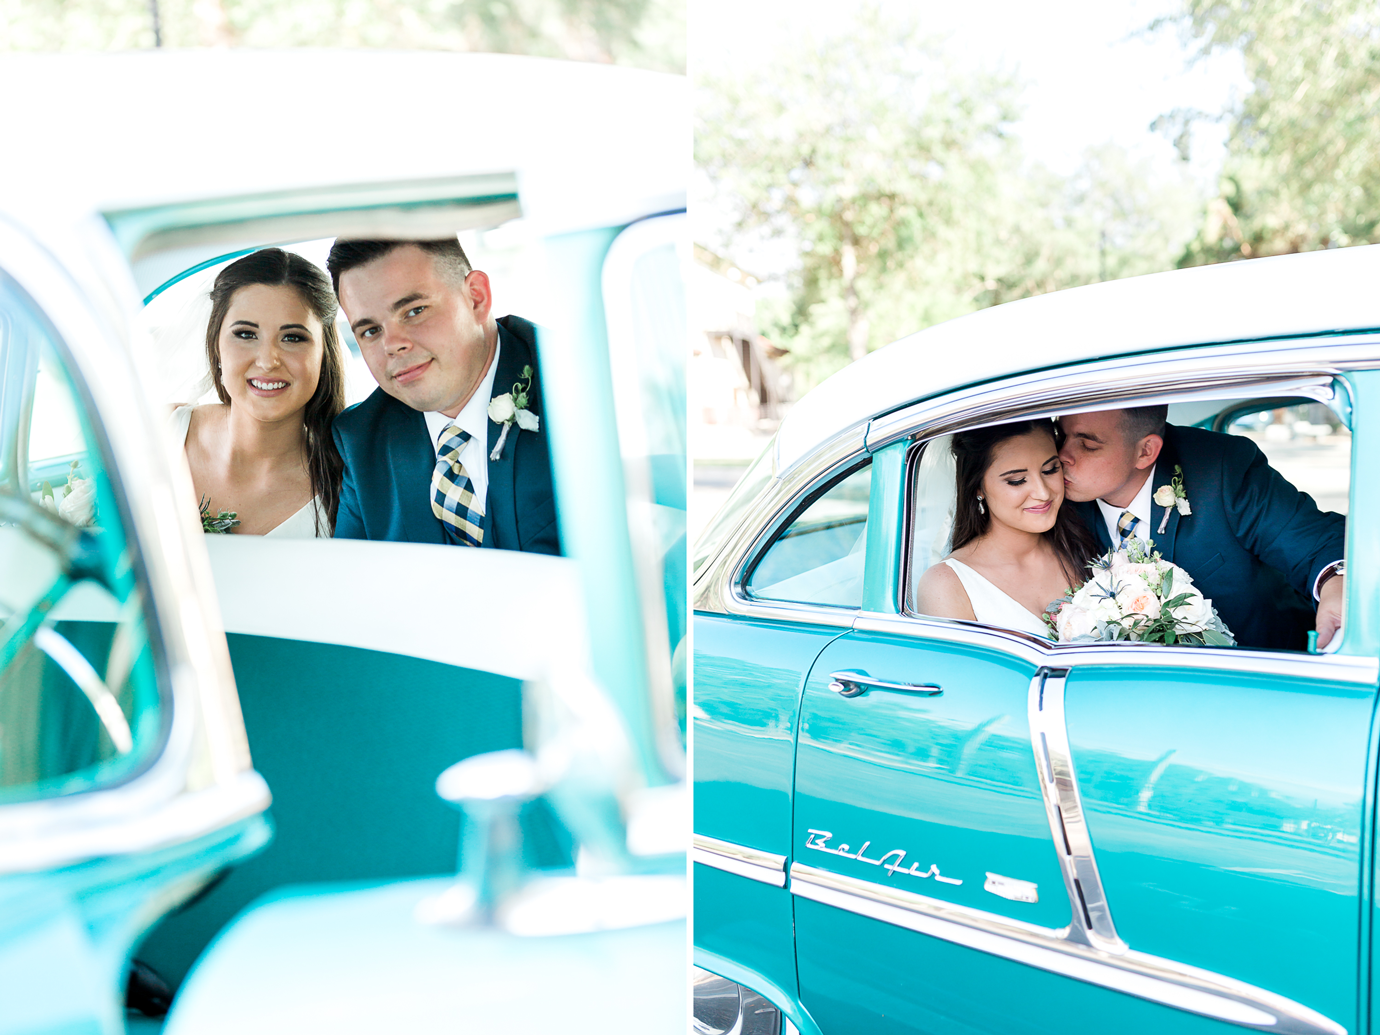 wedding picture ideas with a vintage car